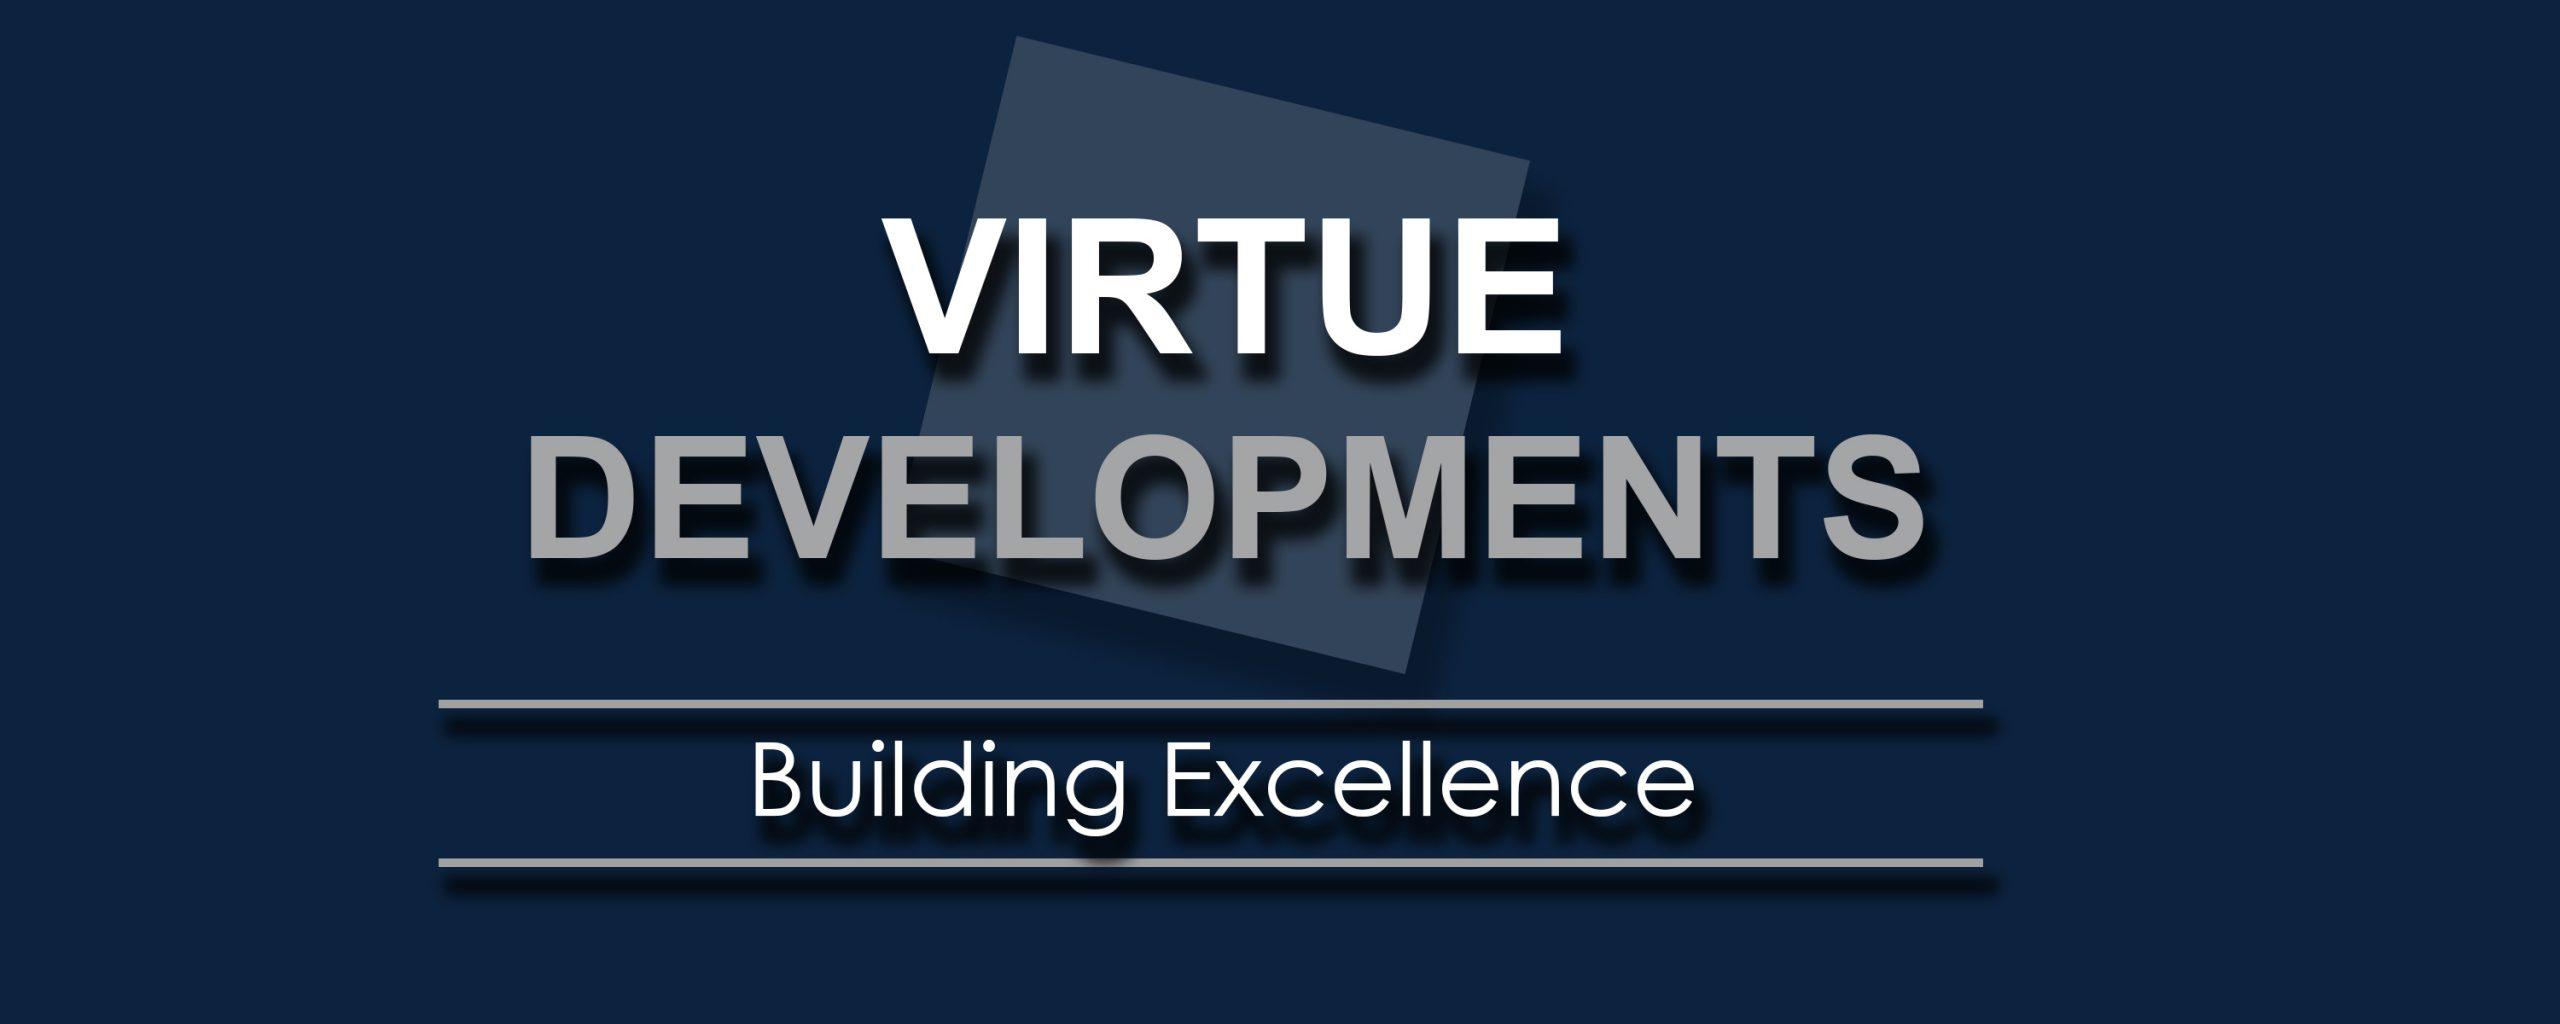 Virtue Development logo